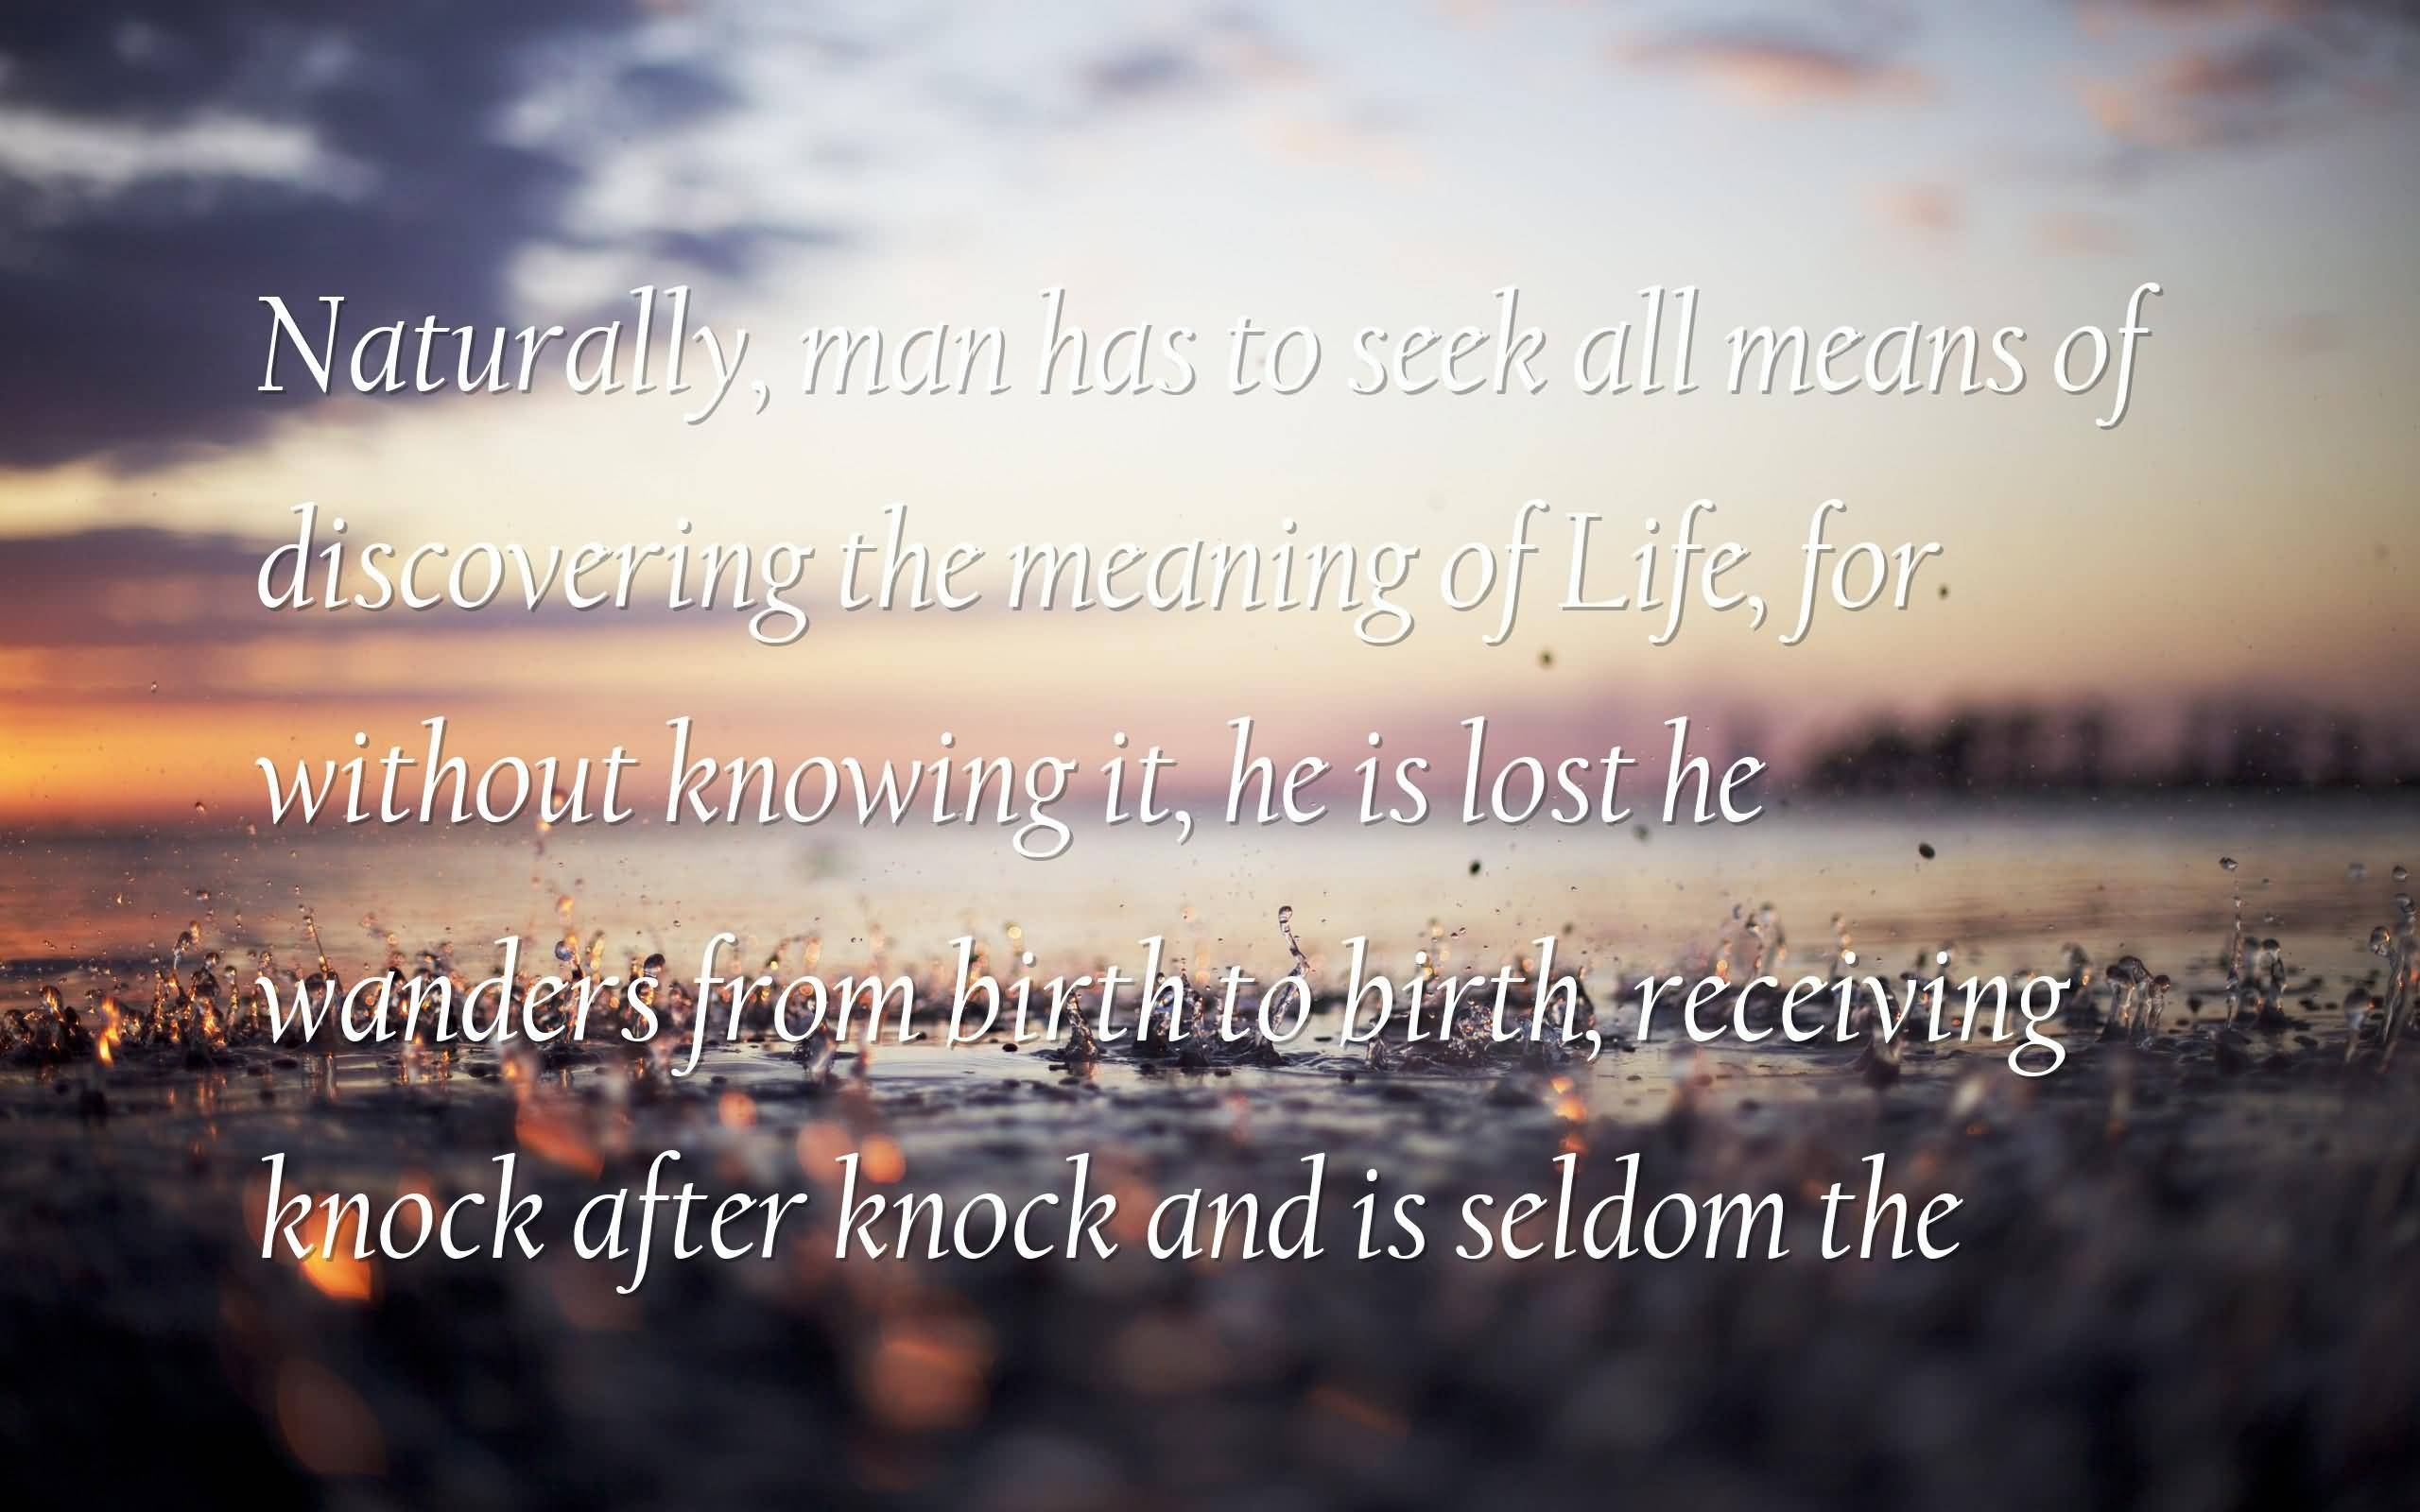 Meaning Of Life Quotes Philosophers Quotes On The Meaning Of Life 02  Quotesbae